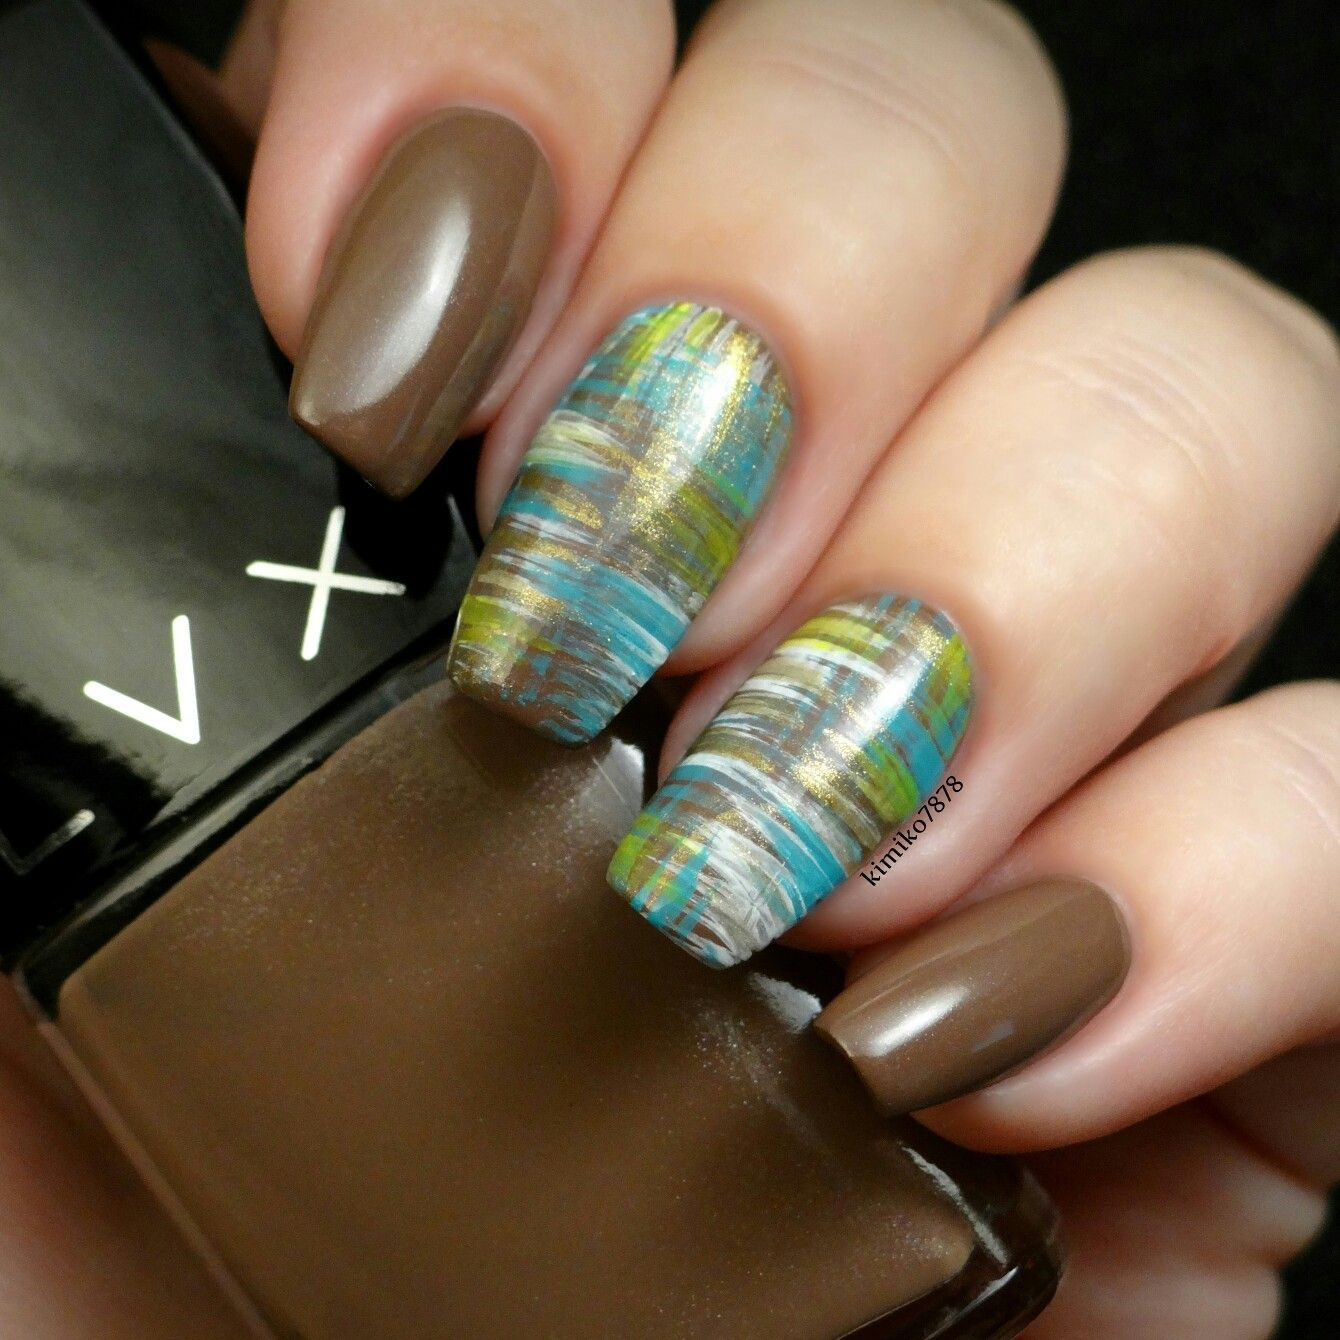 Shoplvx polish in Satal and I used a Mitty Burns Fan brush and ...